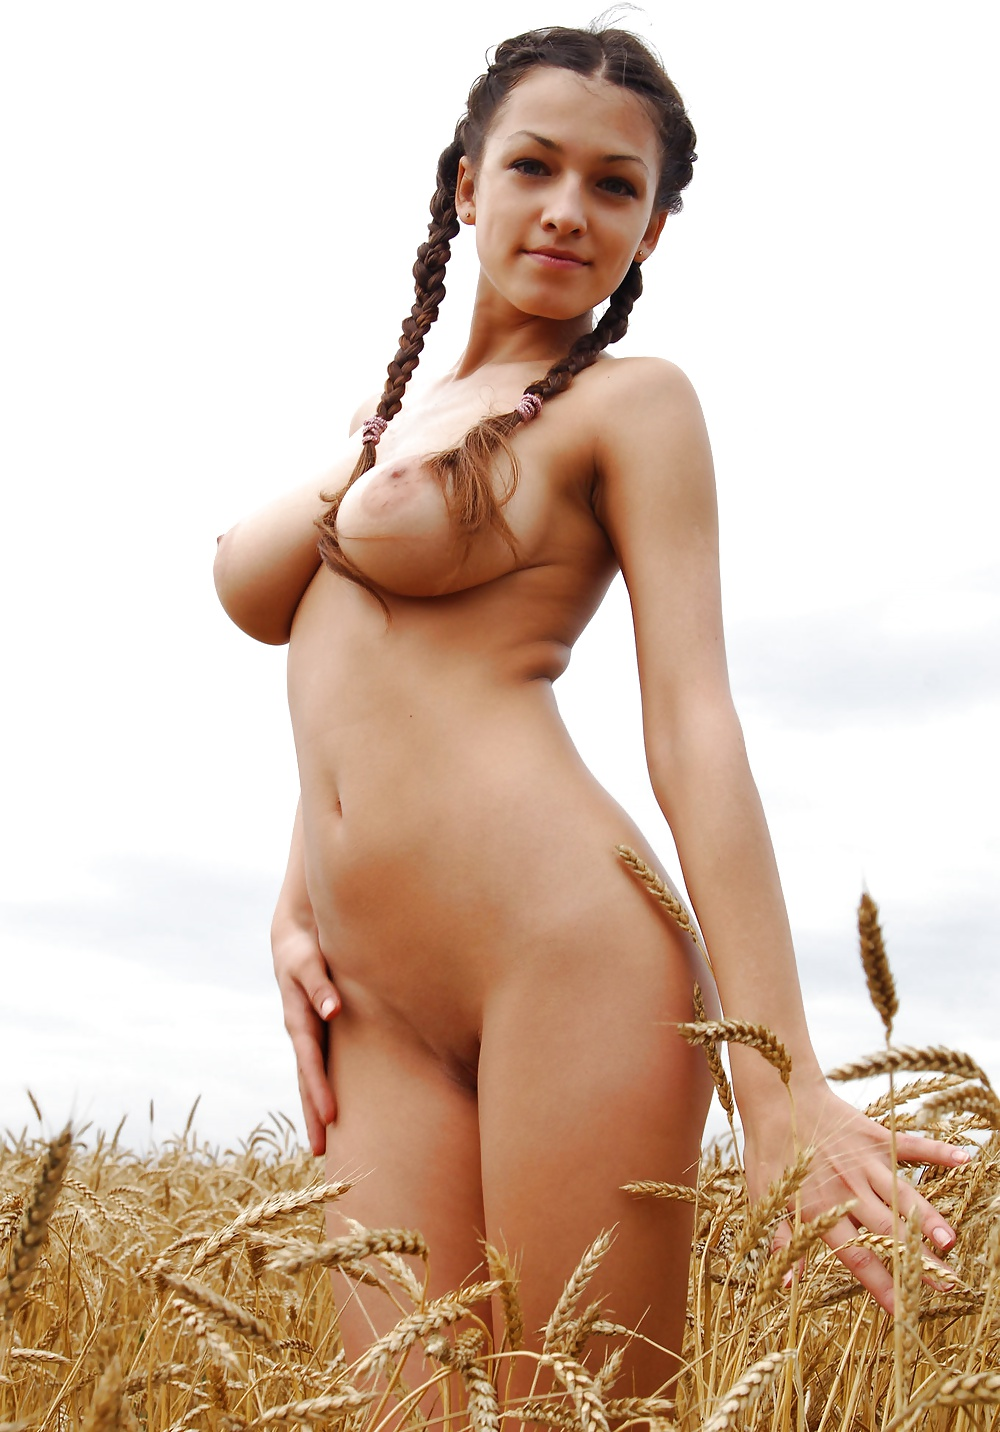 Pigtails girls naked pictures — photo 6